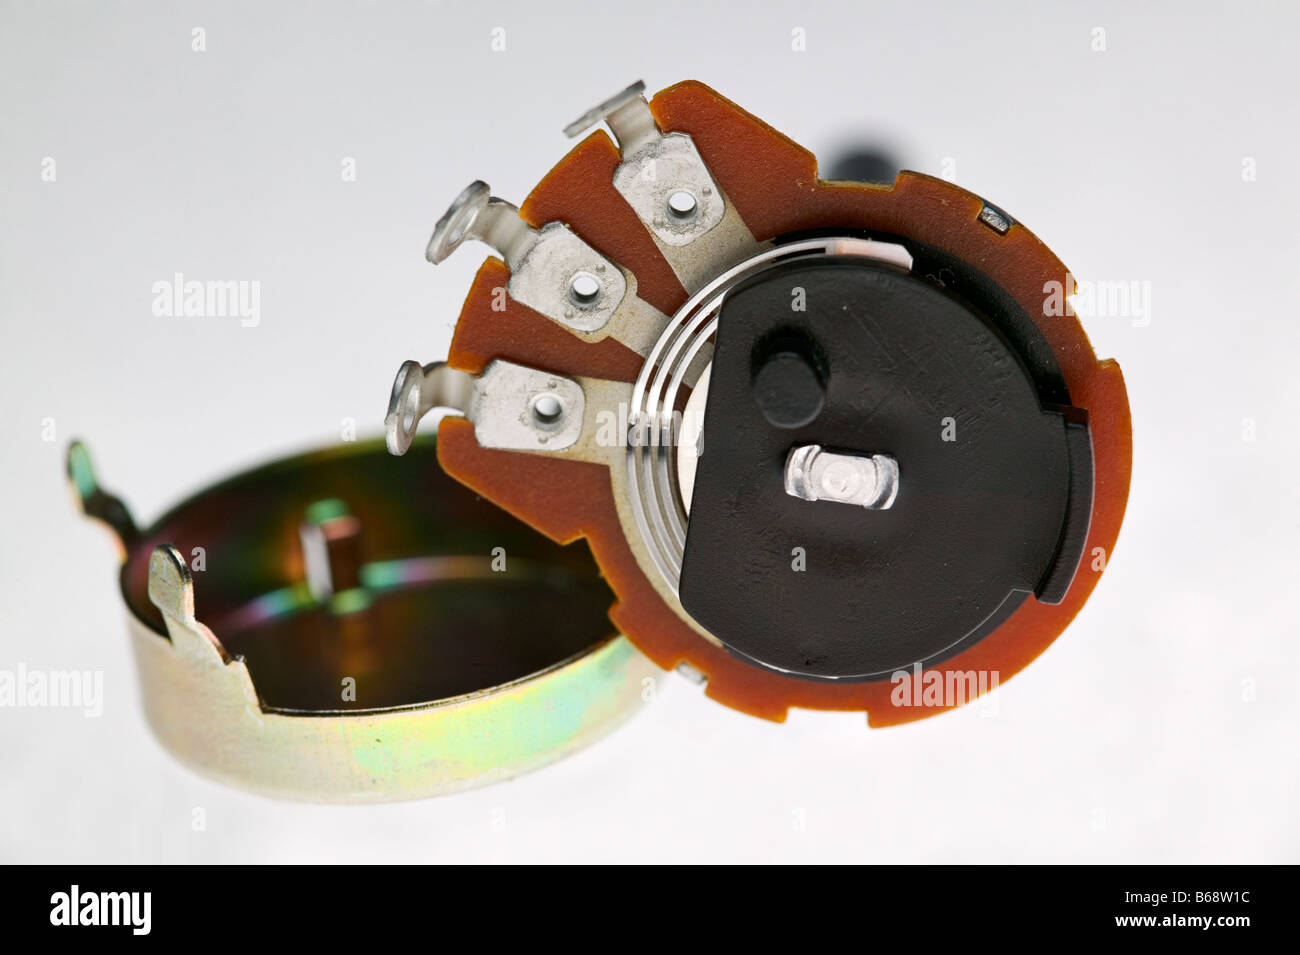 A disassembled potentiometer shows the inner workings - Stock Image